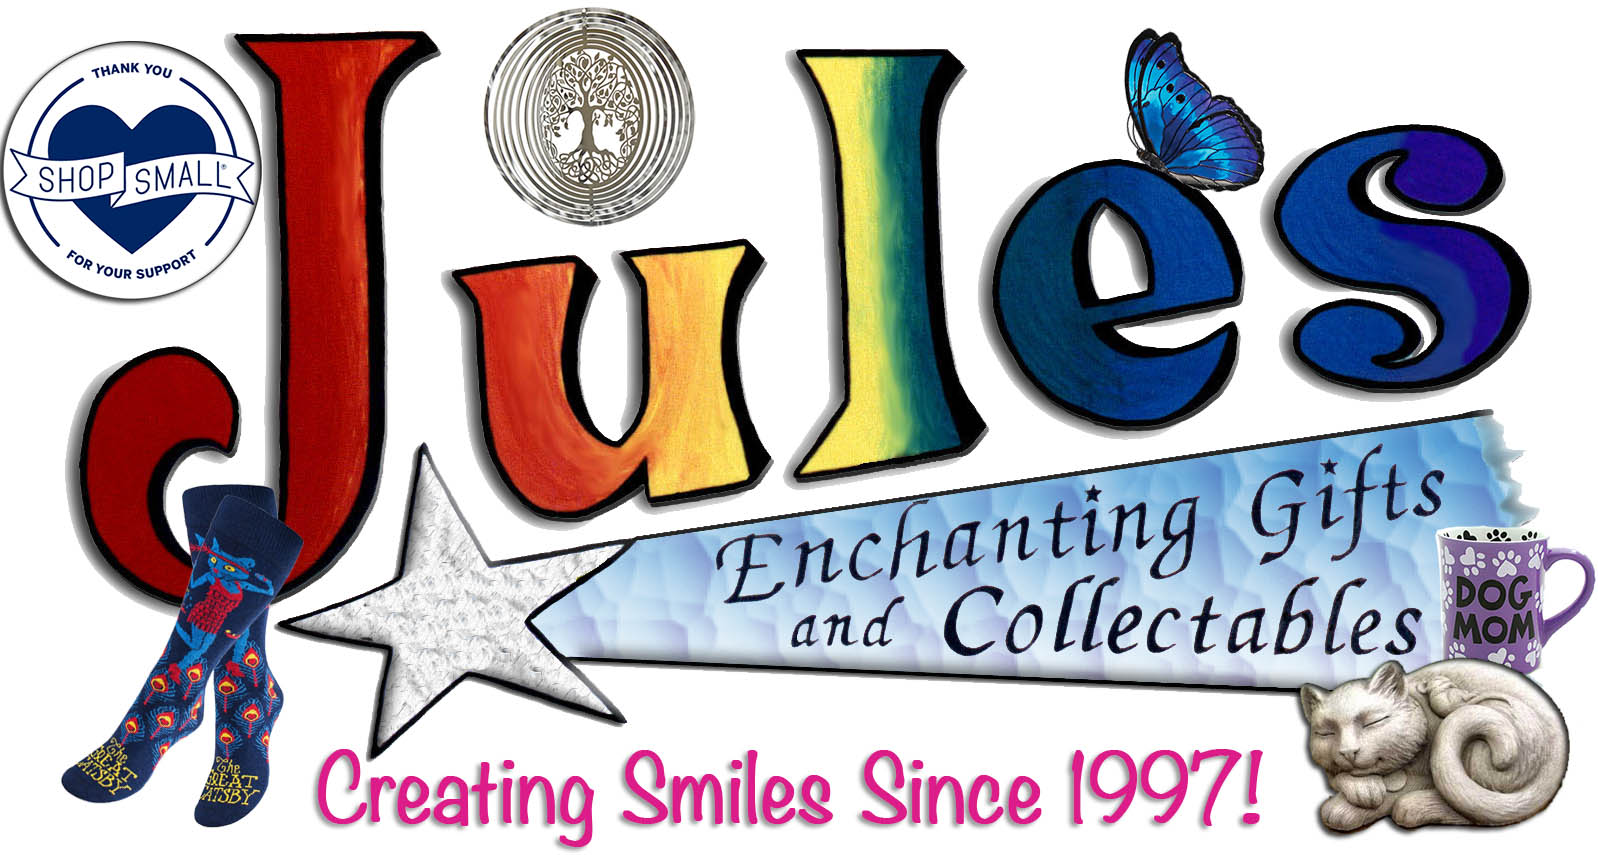 Jules Enchanting Gifts